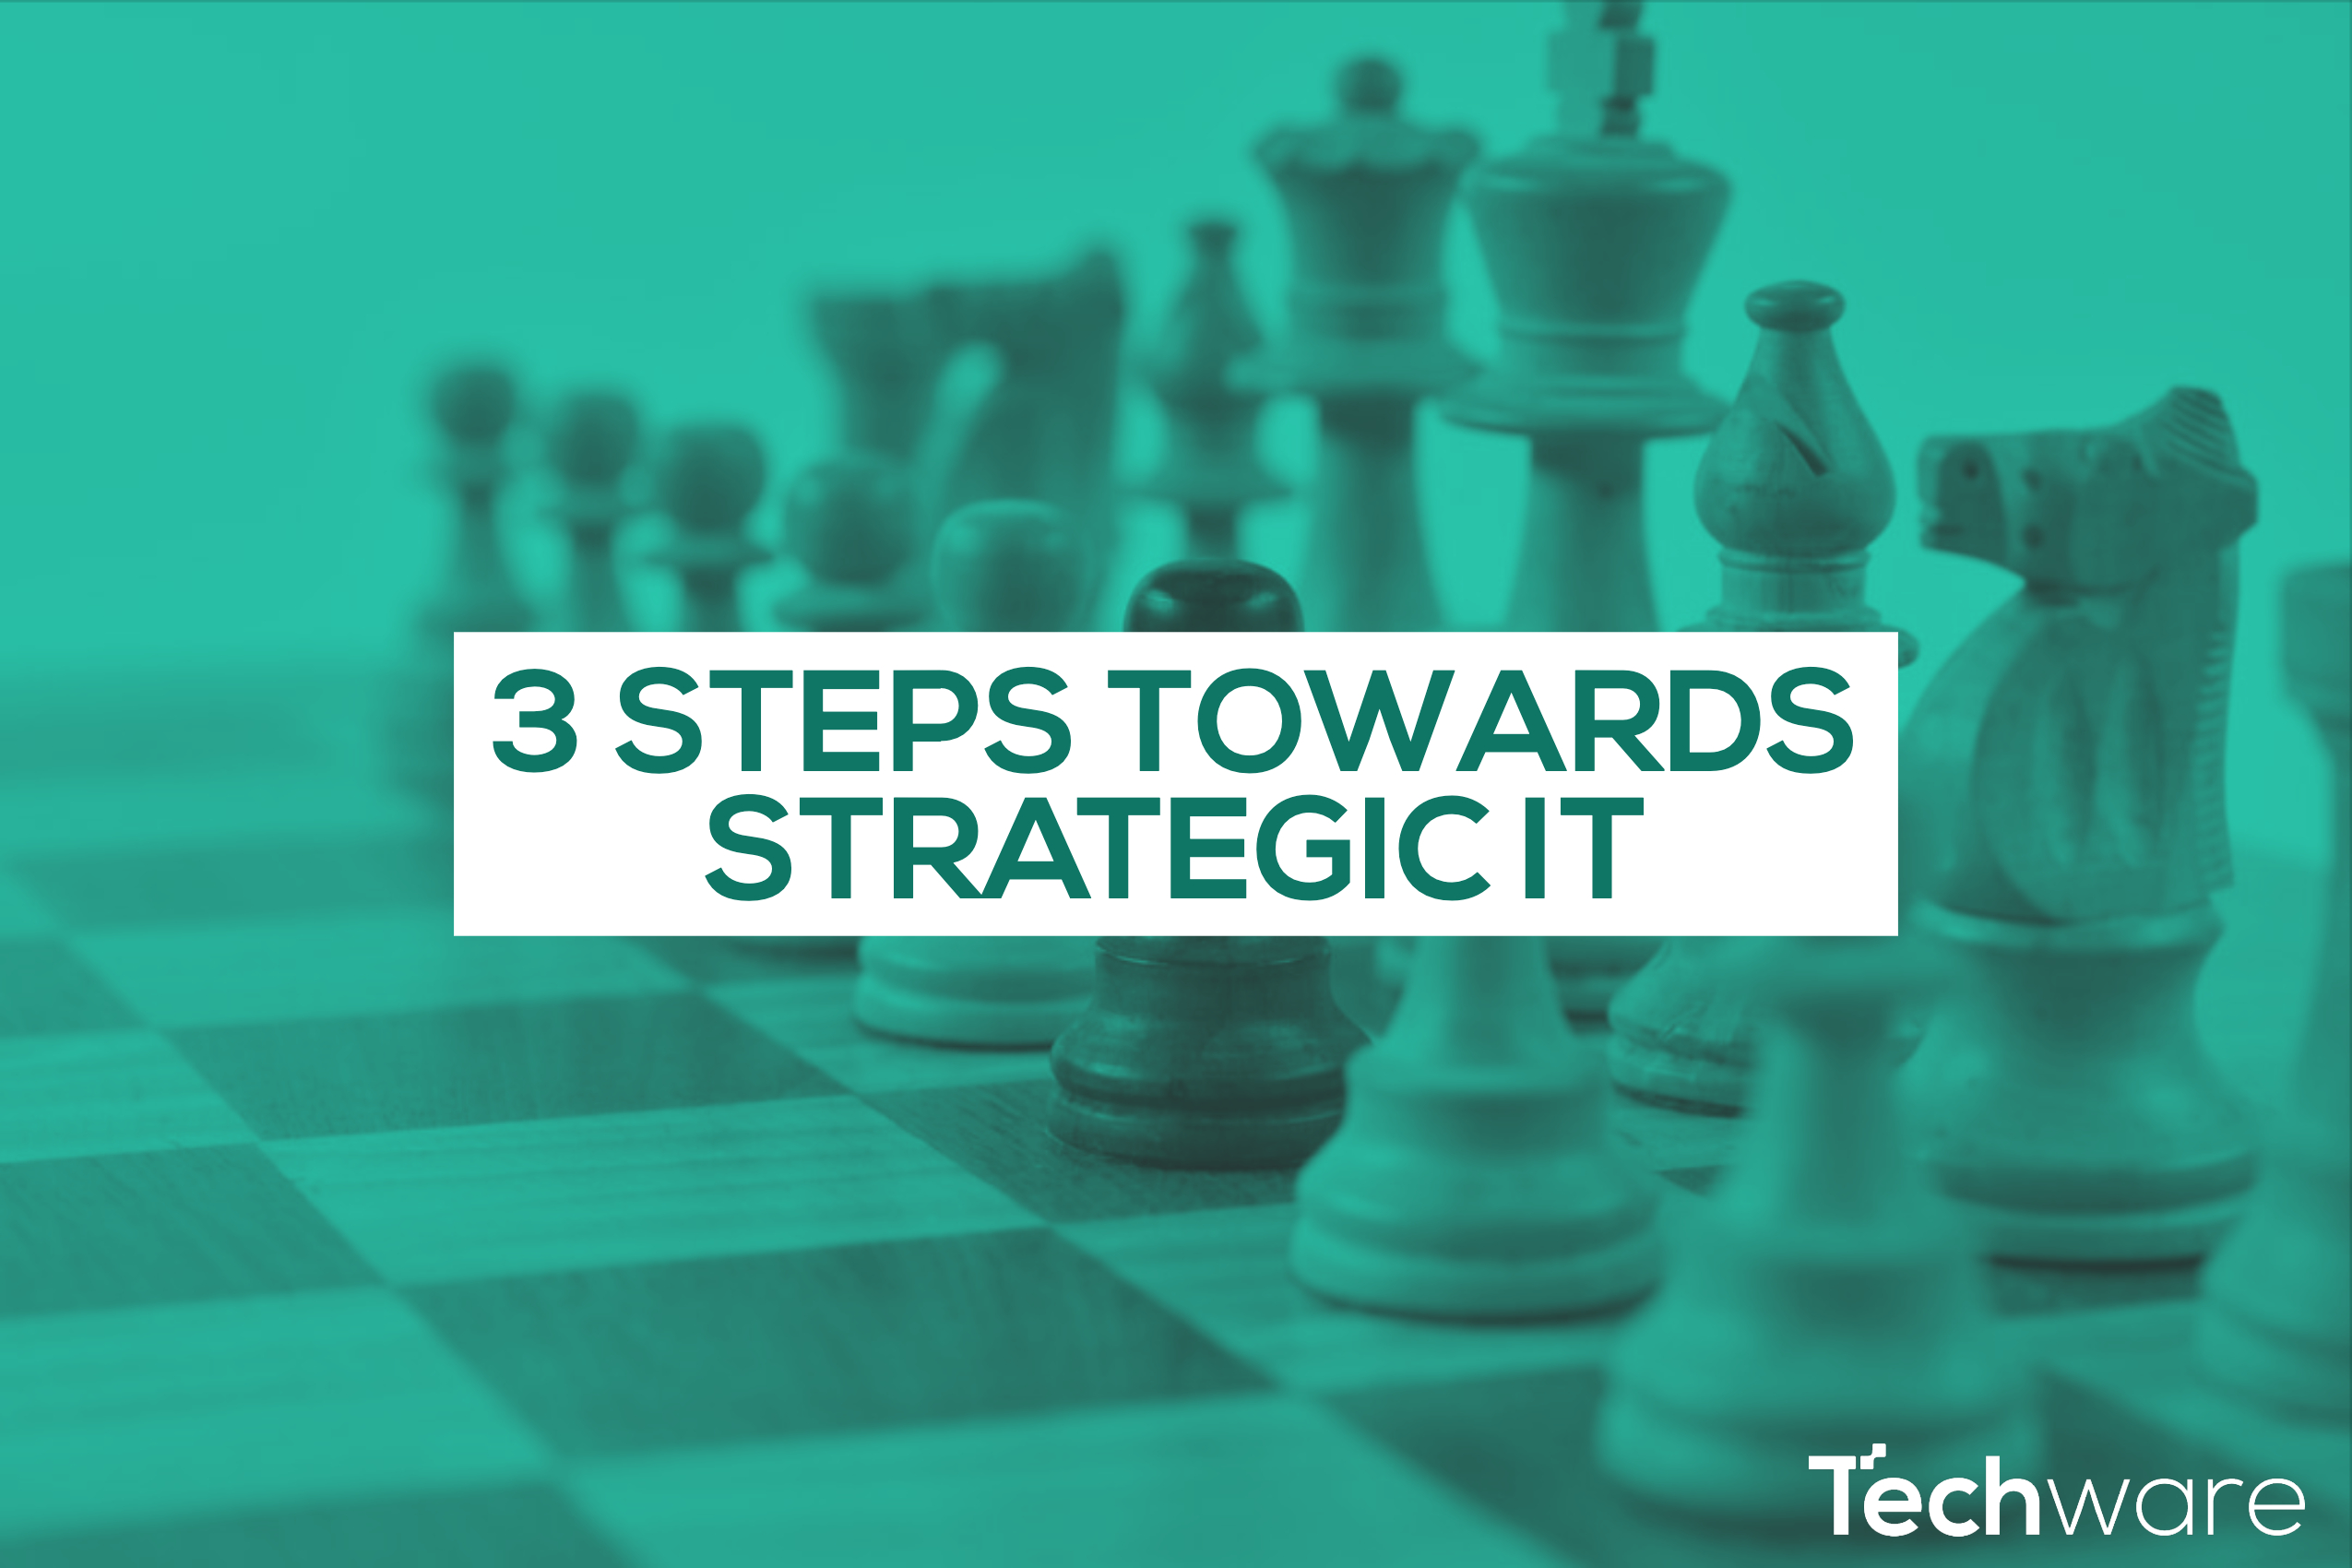 3 Steps to Towards Strategic IT